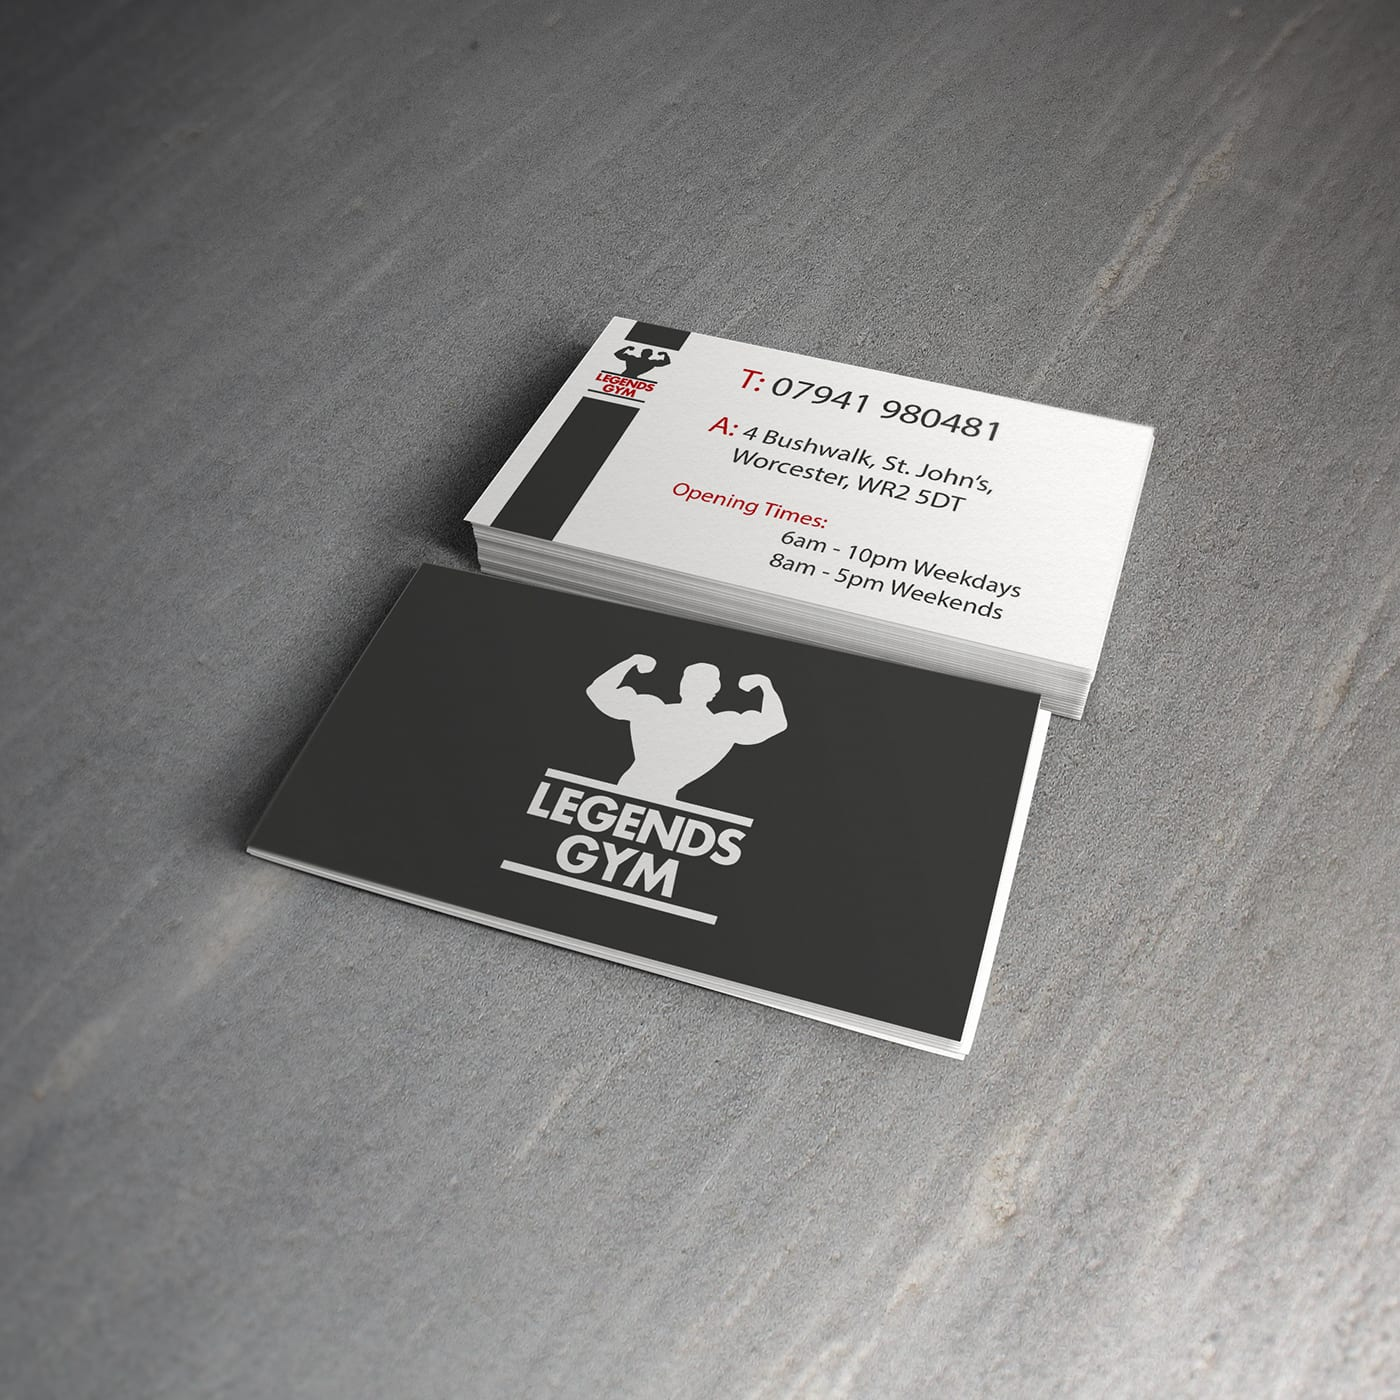 Business card mock up francesca veal level 2 design projects published february 15 2016 at 1400 1400 in business card design reheart